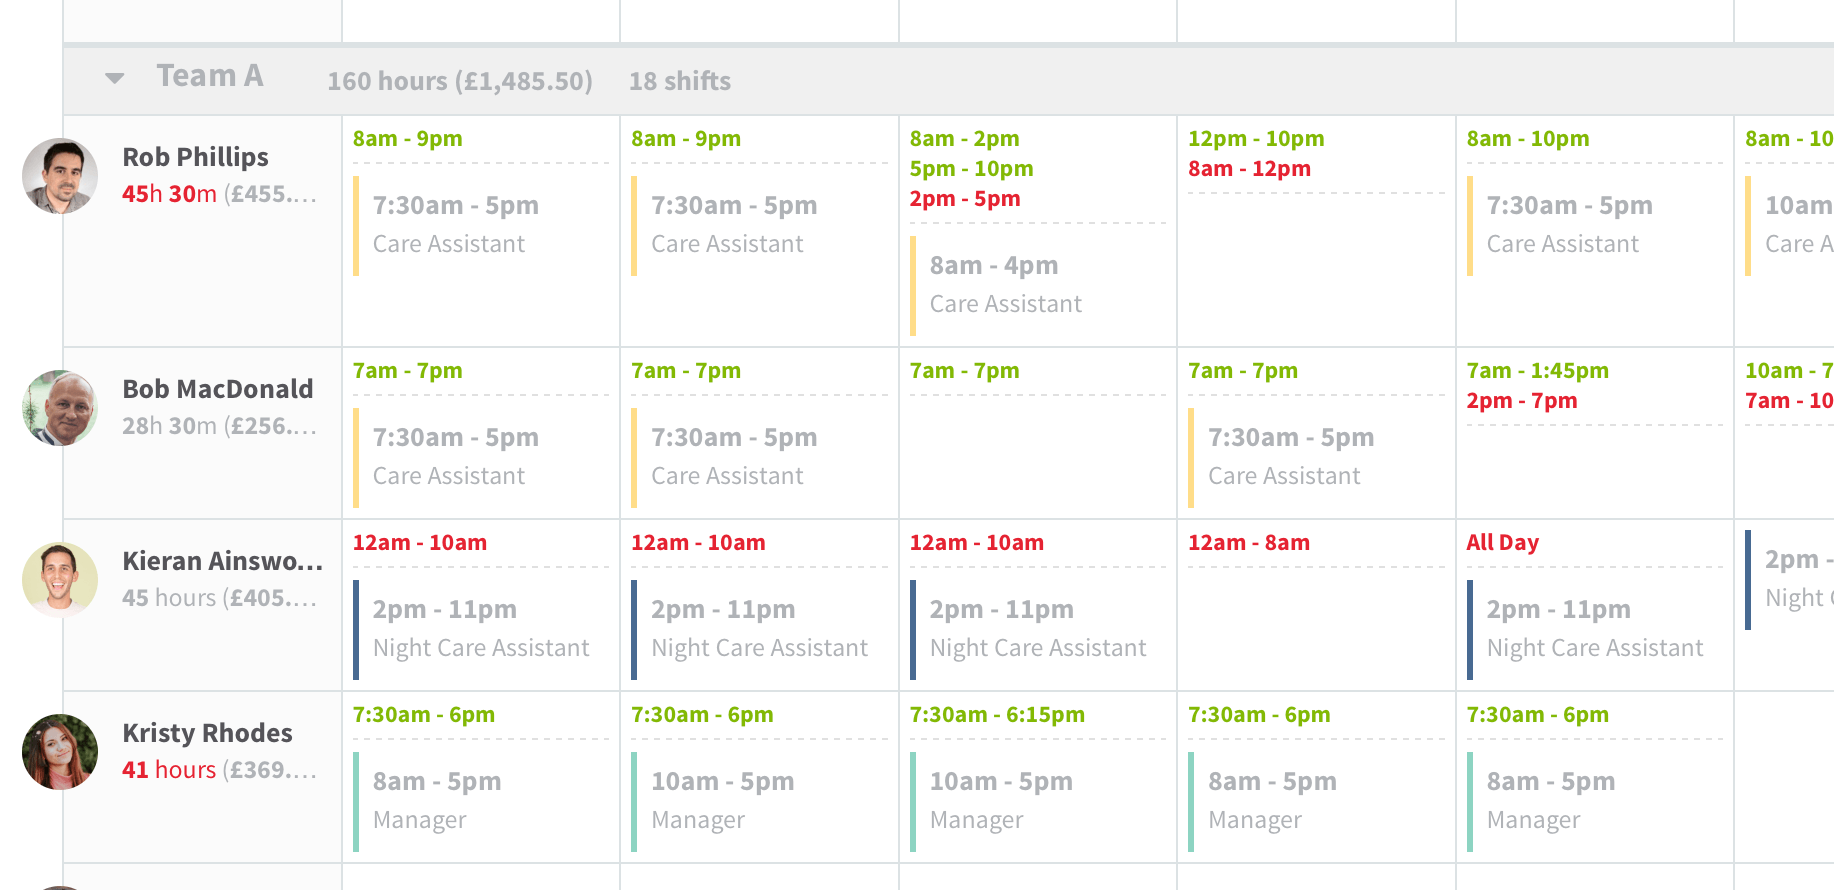 A screenshot from RotaCloud employee scheduling software showing a number of shifts and staff availability.